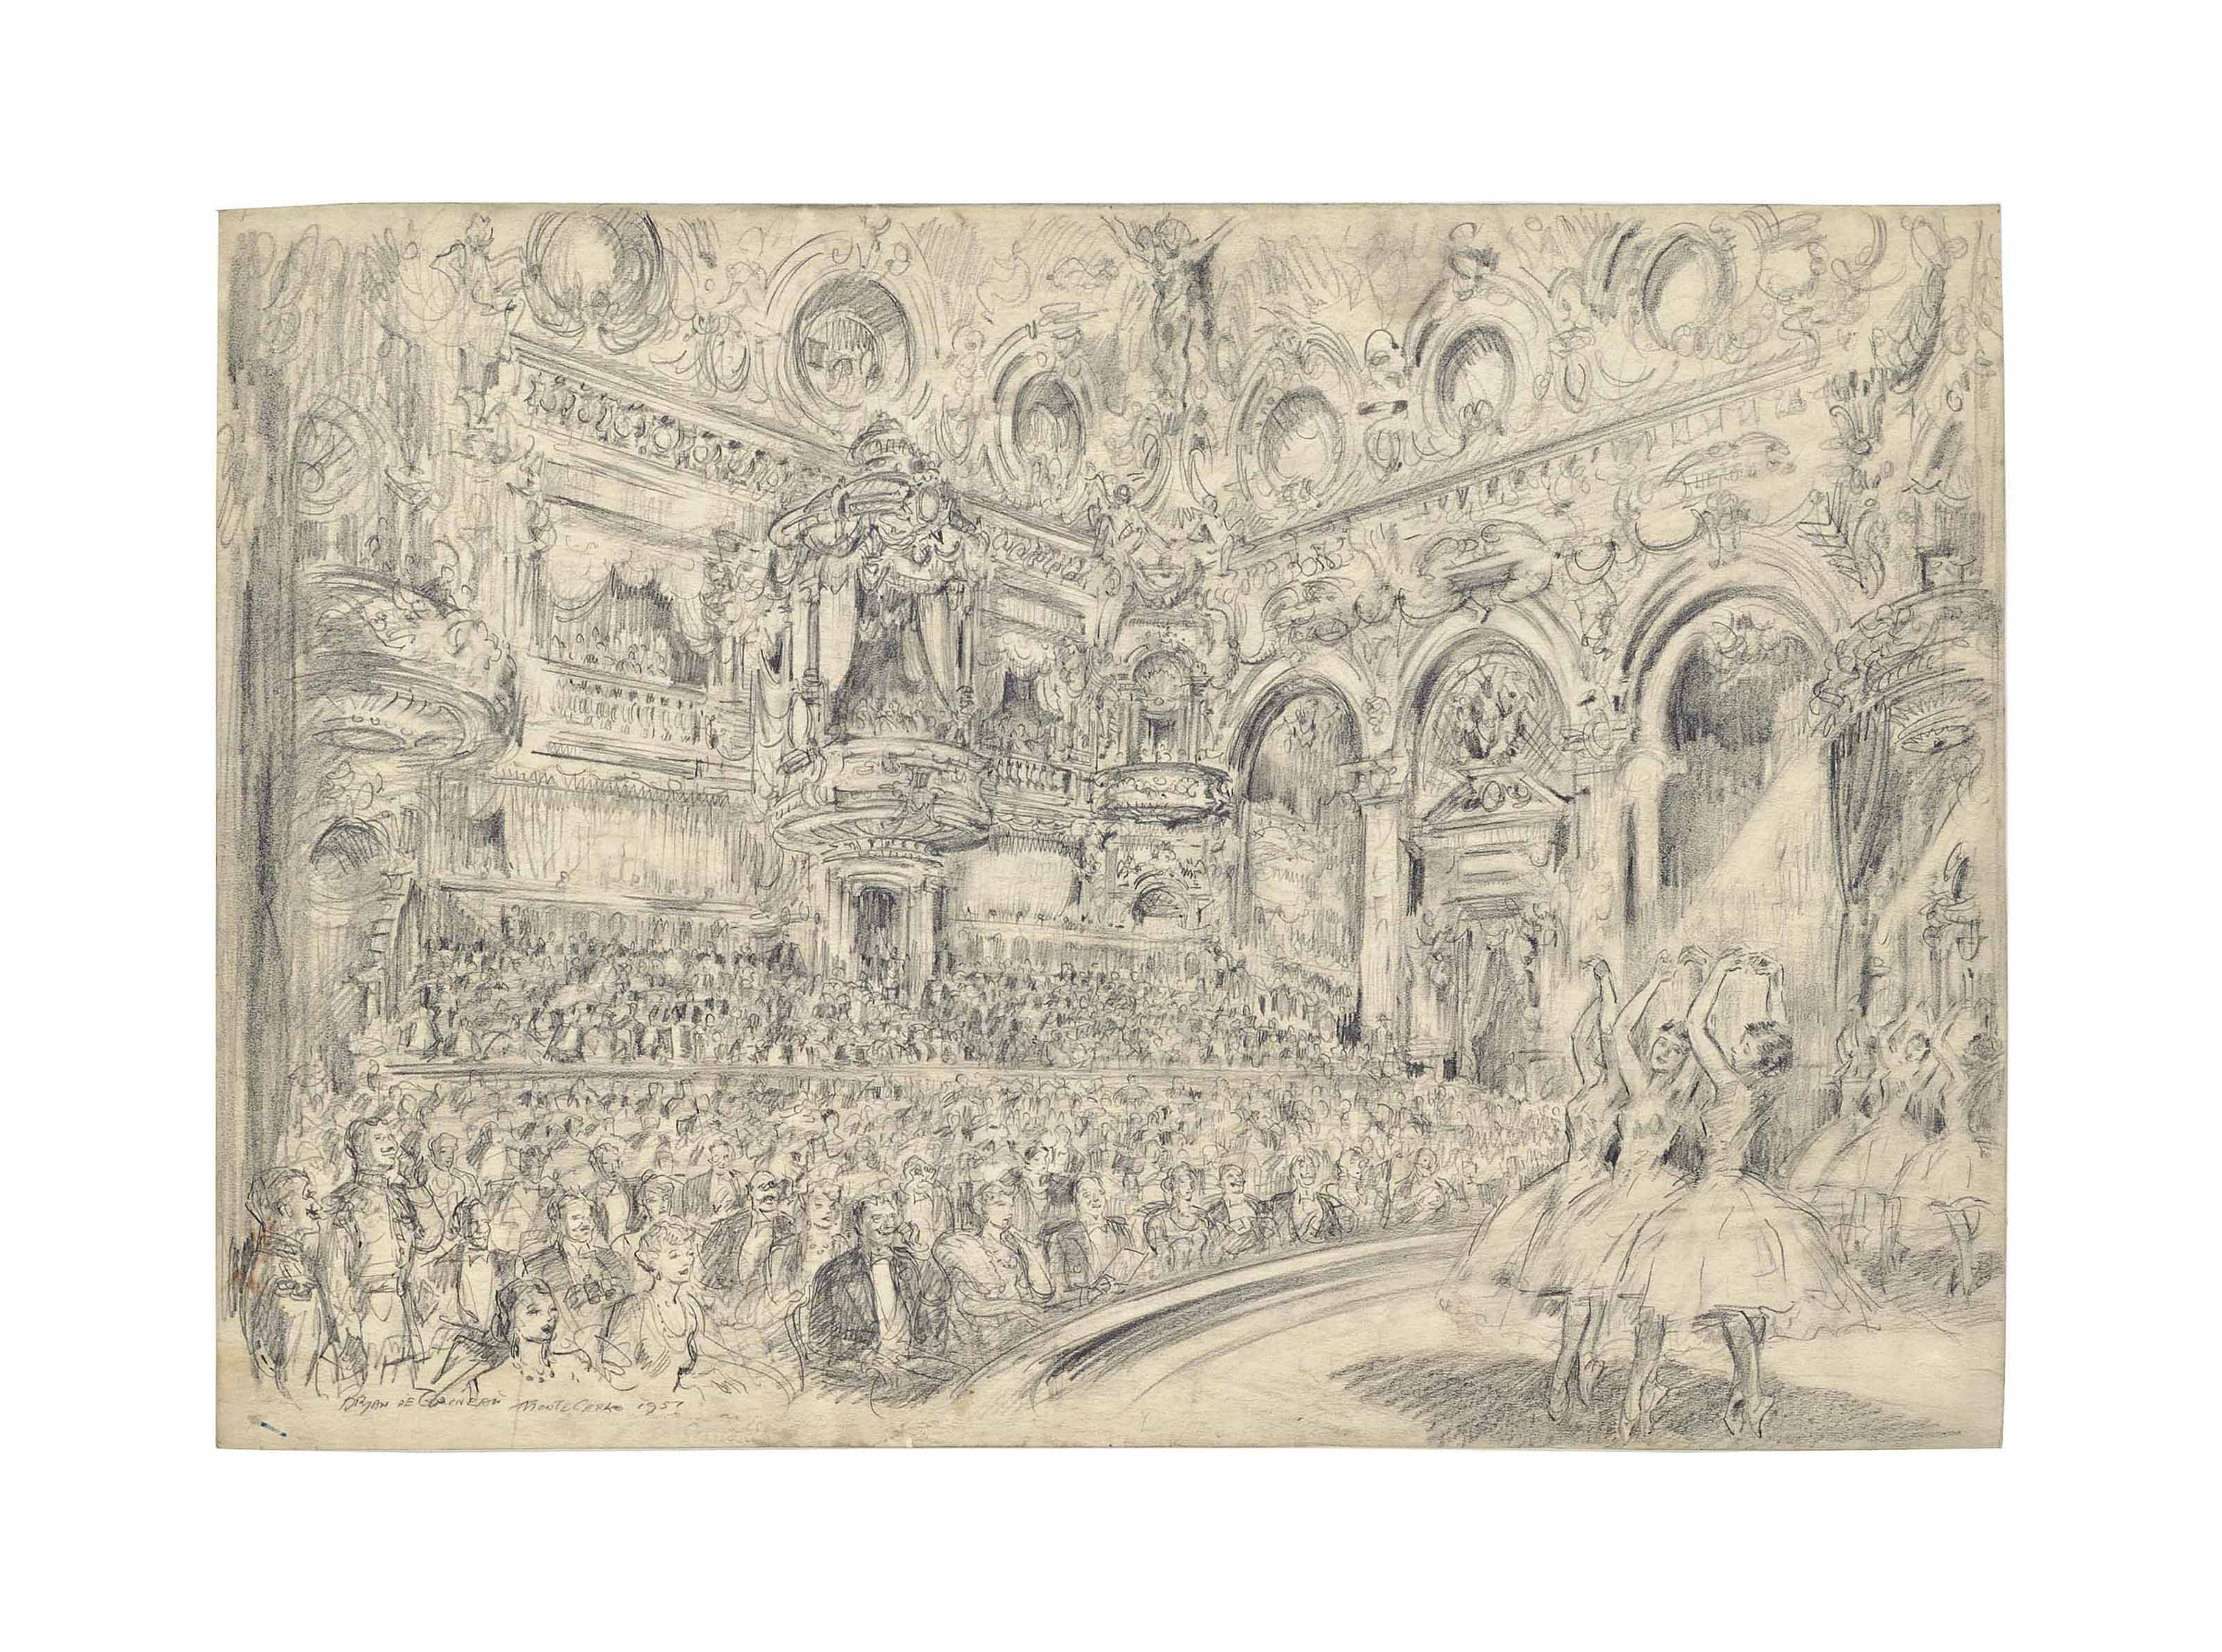 An oasis of gaiety and splendour amid the general world gloom: A ballet performance in the Little Golden Theatre of the Casino at Monte Carlo